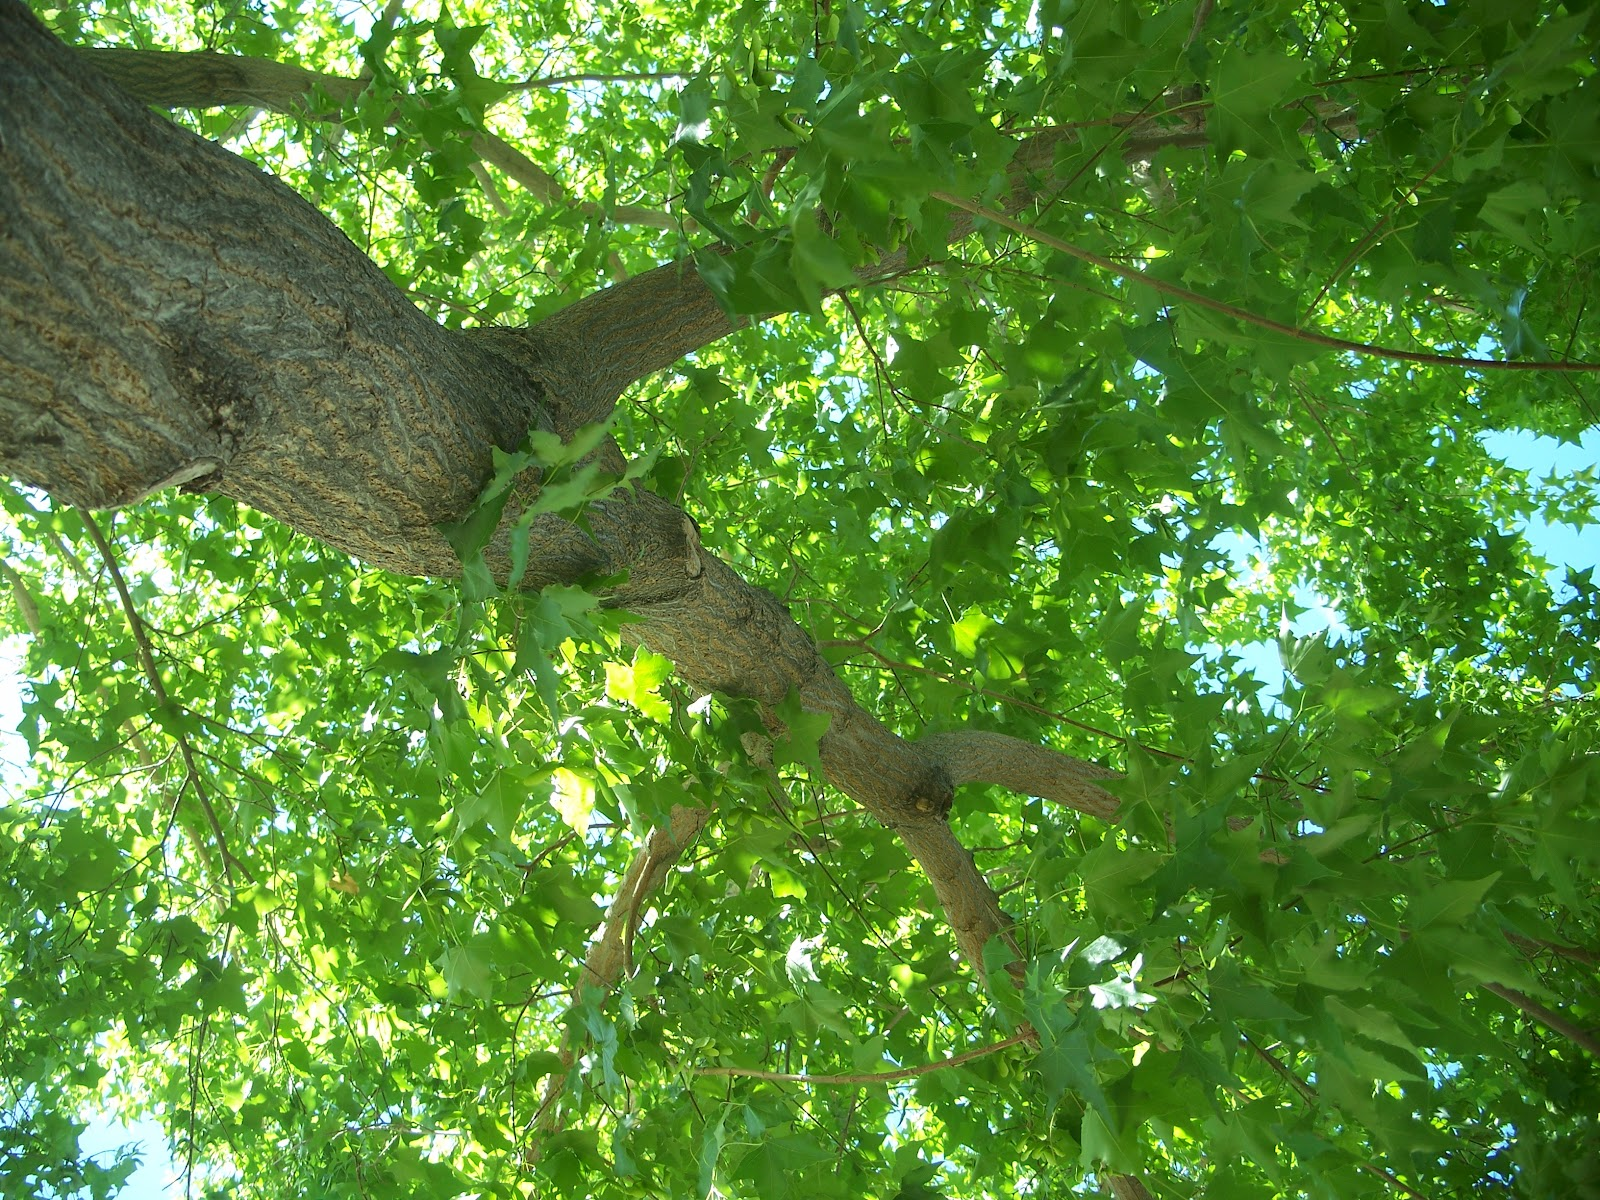 tree seed helicopter with Plant Of Month Shantung Maple on Maple Seeds And Animals Exploit Same Trick Fly 1540 furthermore 564860073 additionally Crimson King Maple Tree Seeds furthermore Factsheet additionally Ragwort Control Removal Advice.